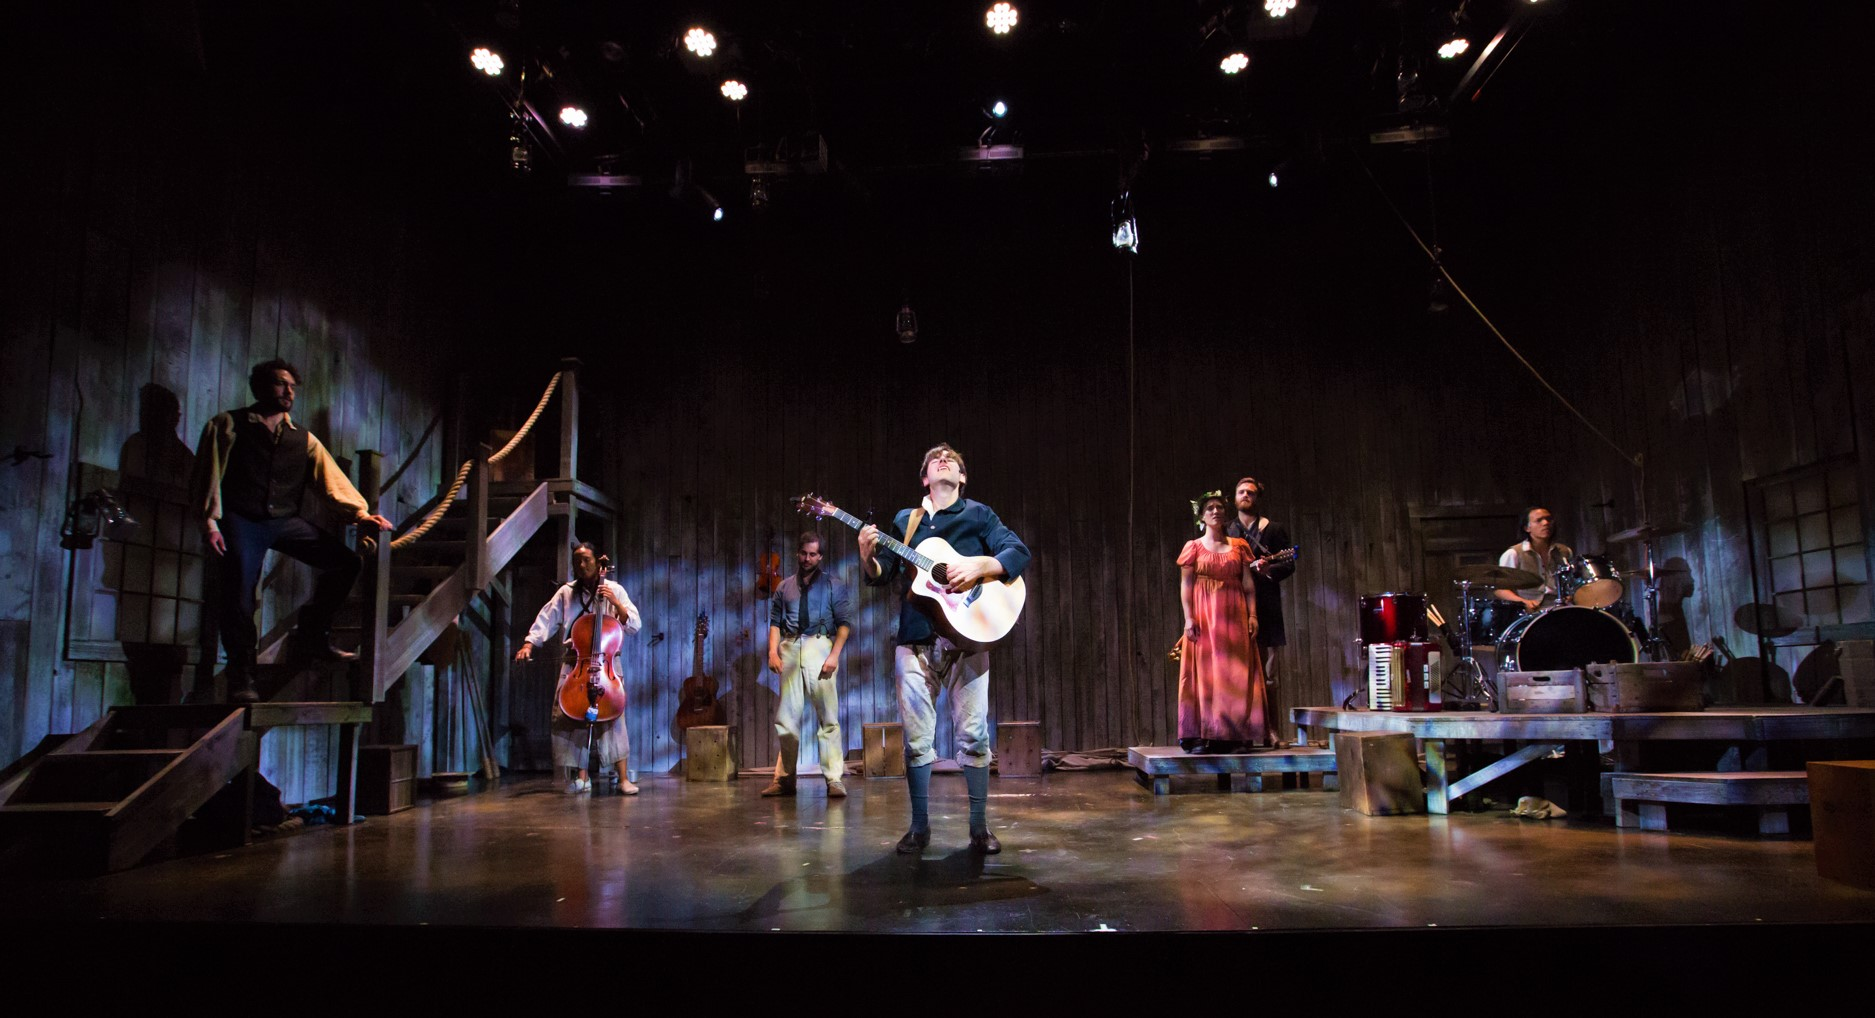 SeaWife Production at White Heron Theater, 2017. Photo by Cary Hazlegrove.